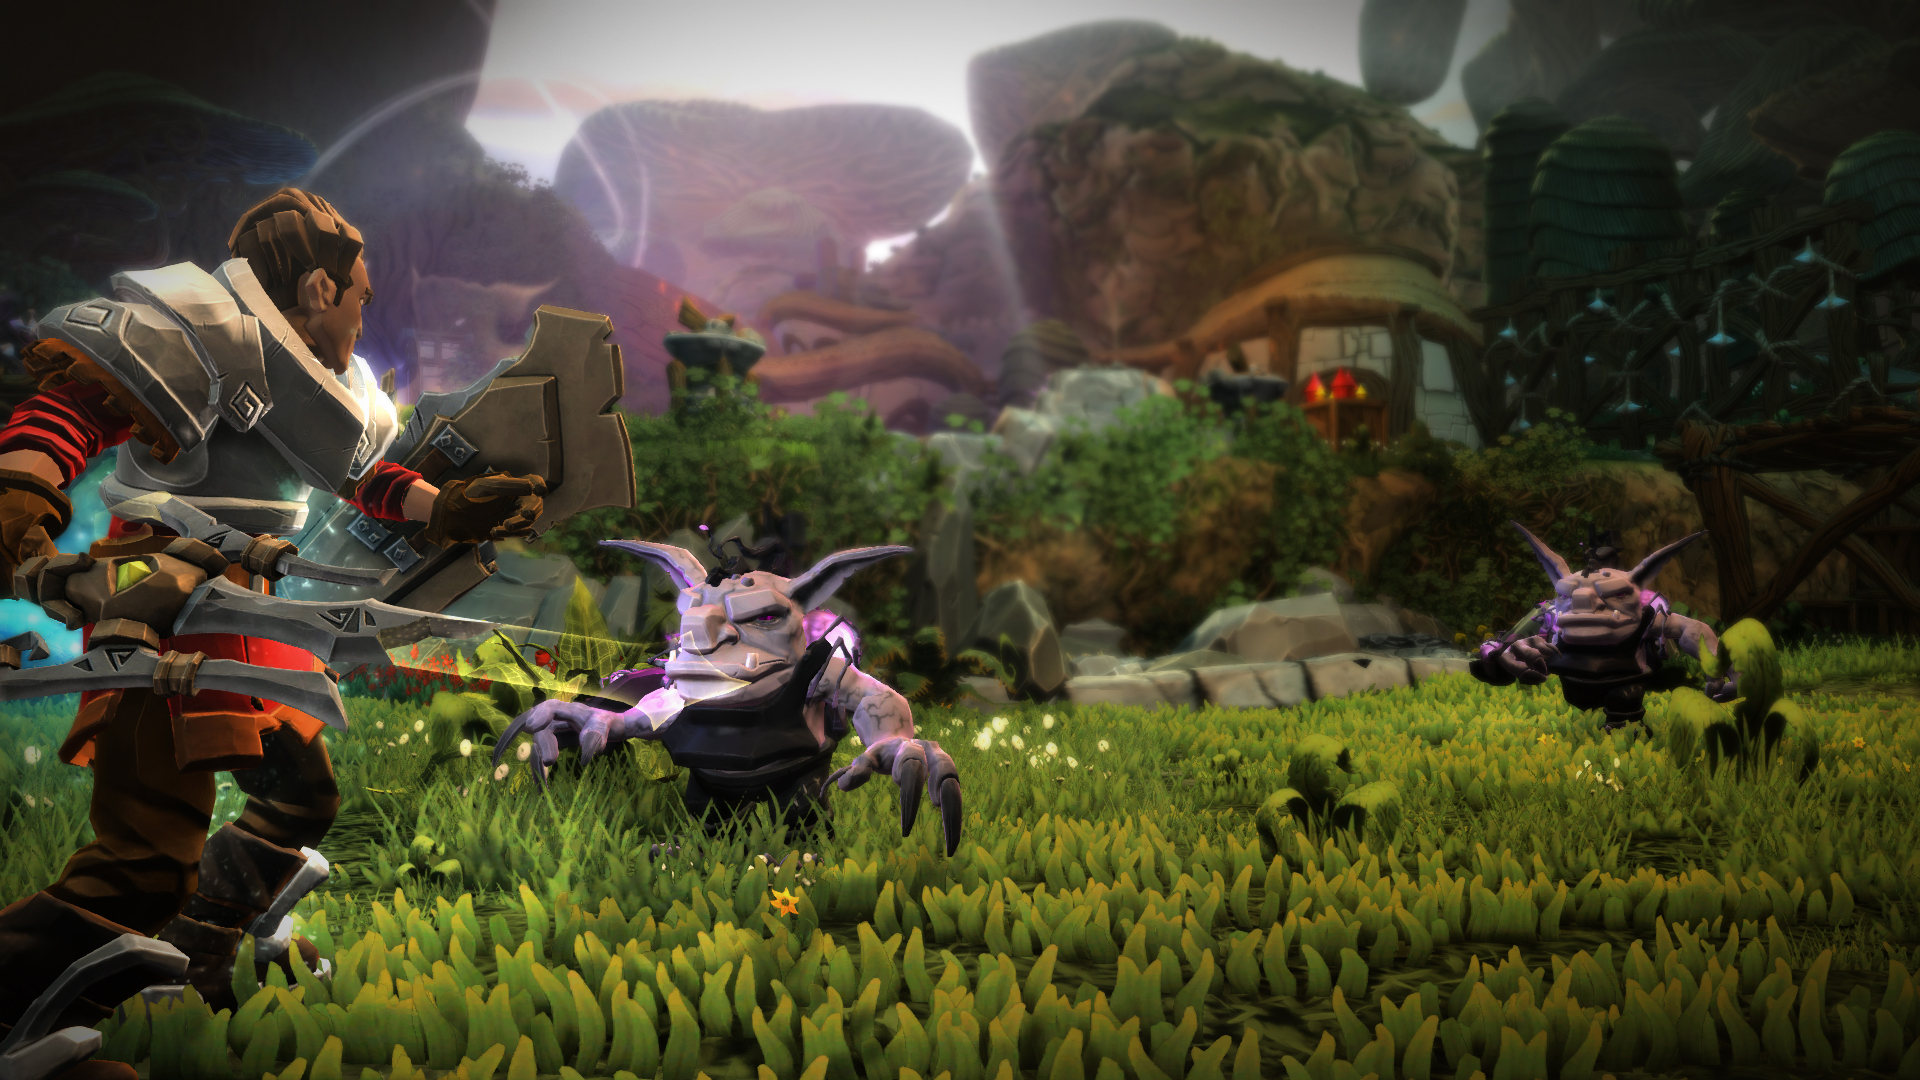 While the LittleBigPlanet series may take the cake for narration, Project Spark has the best and most user-friendly game-creation tools yet in a commercial ...